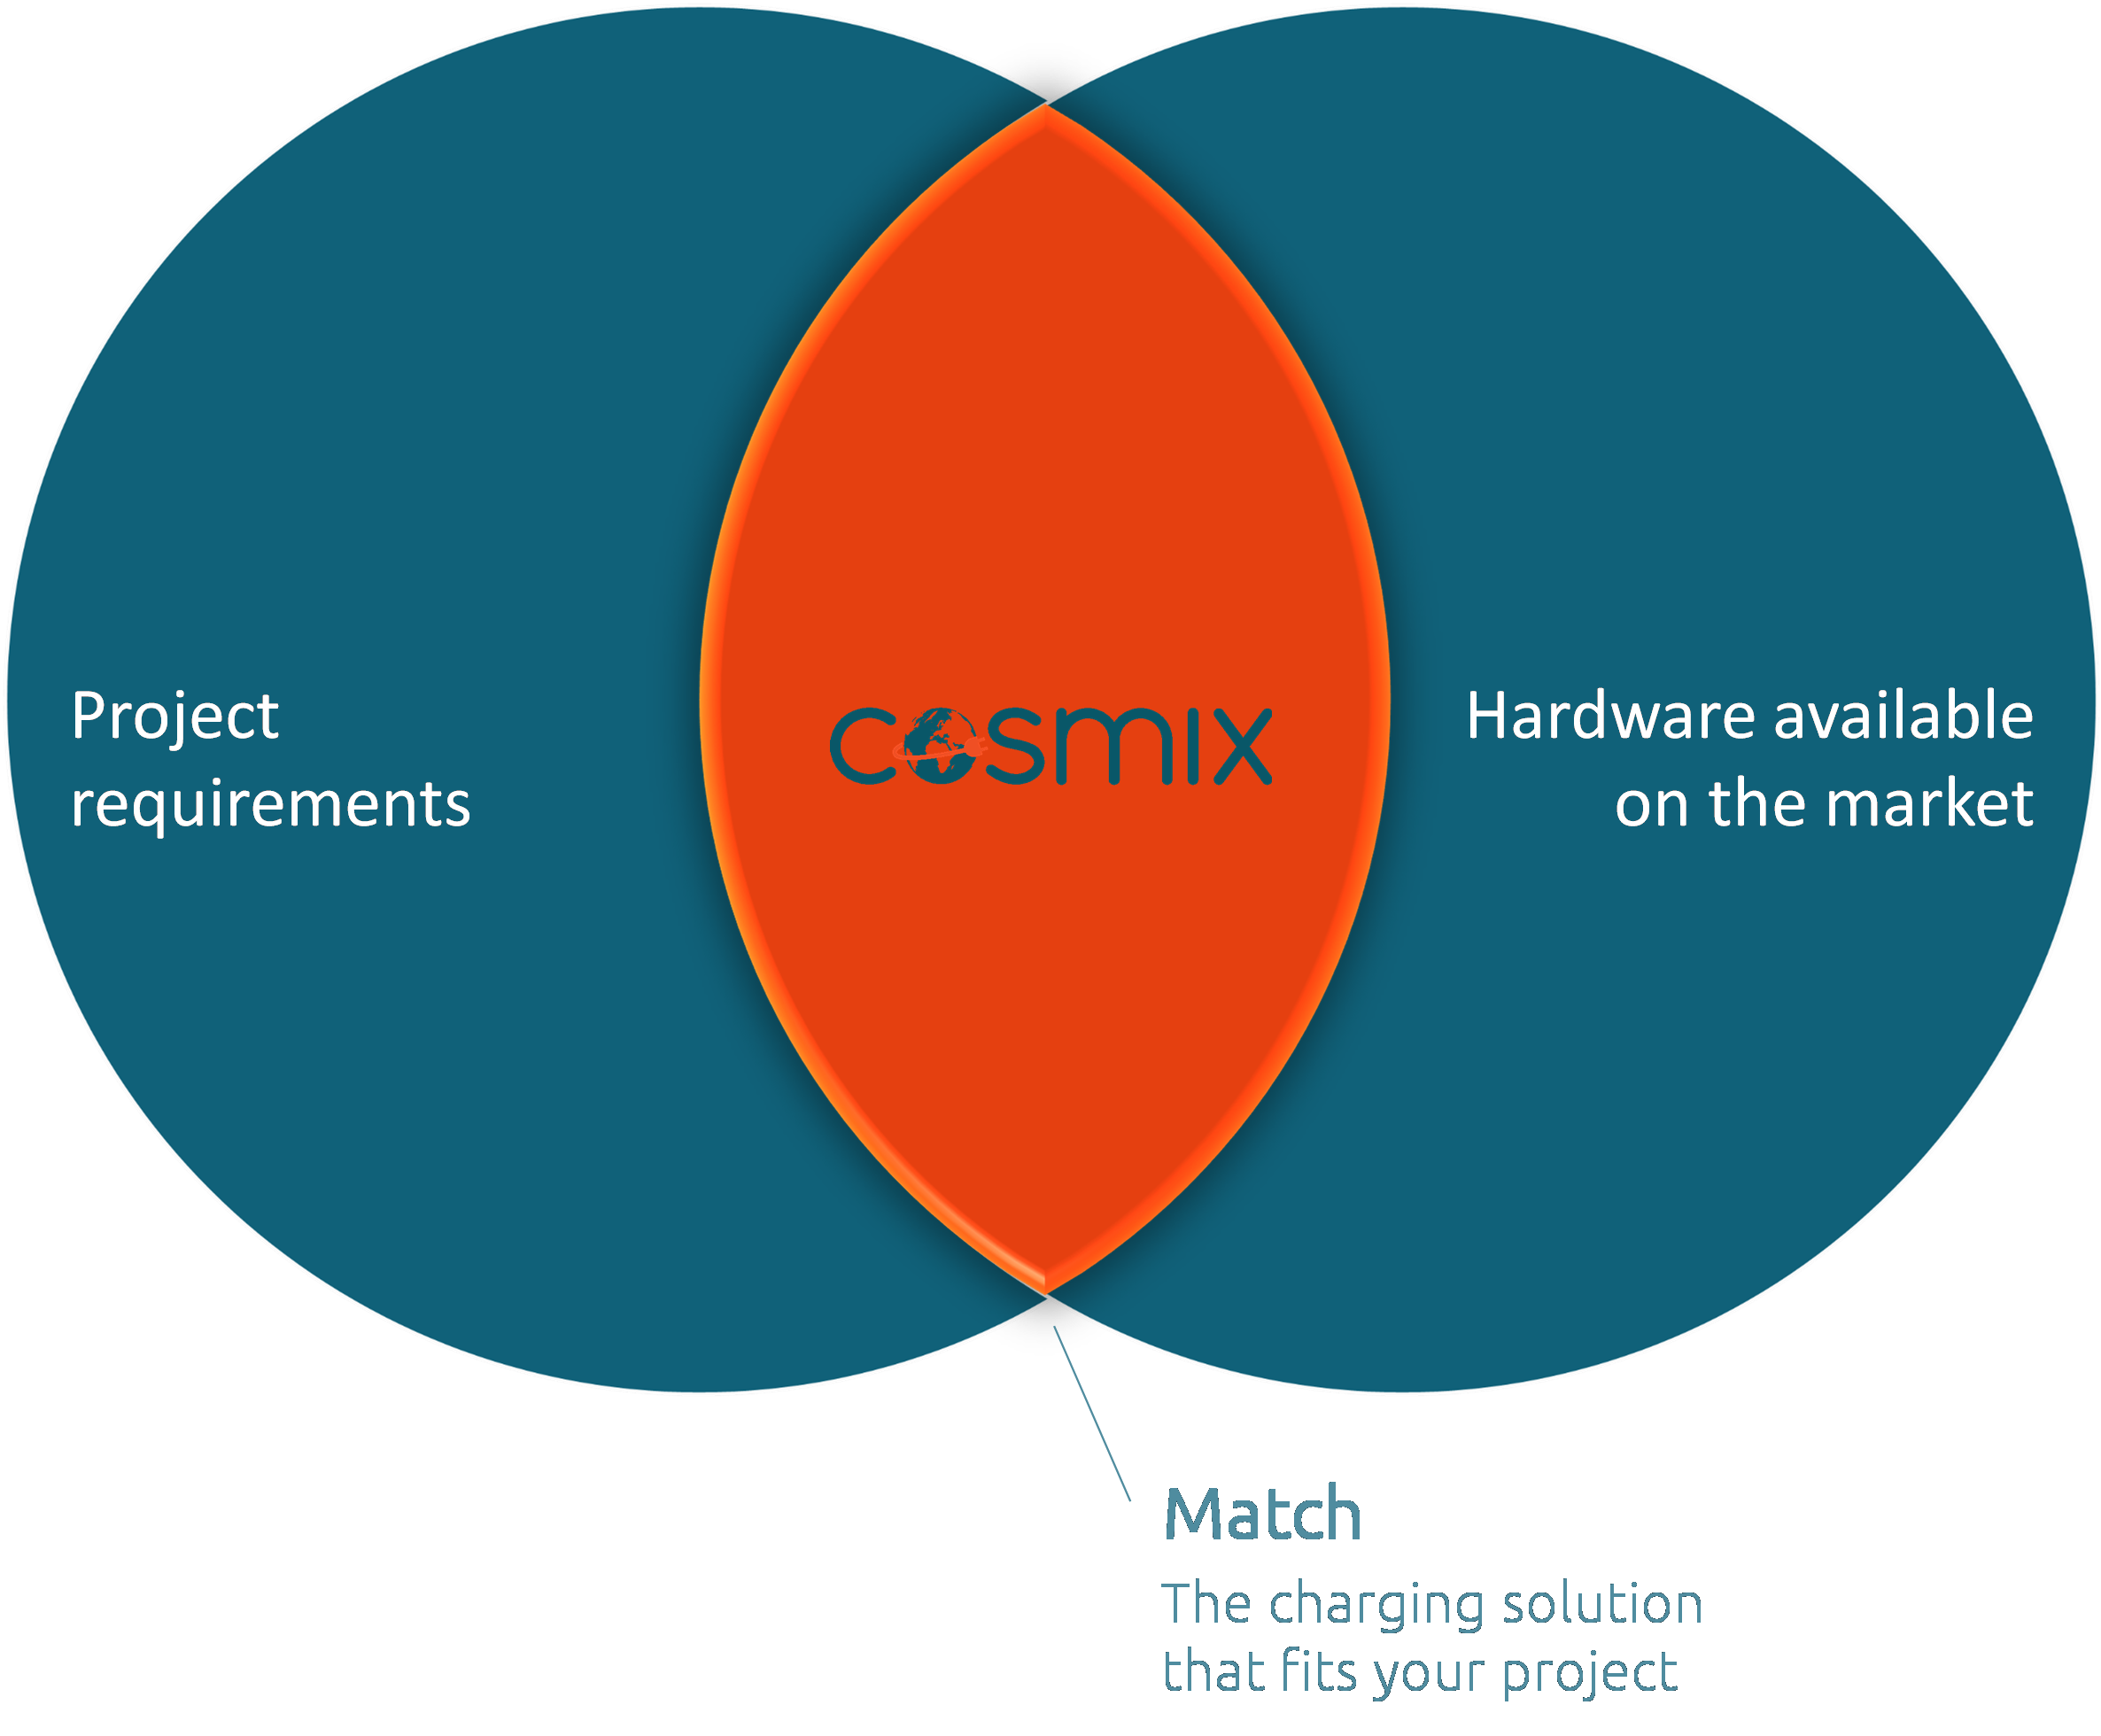 With cosmix you get an up-to-date and detailed digital overview of which charging stations are currently available on the market.